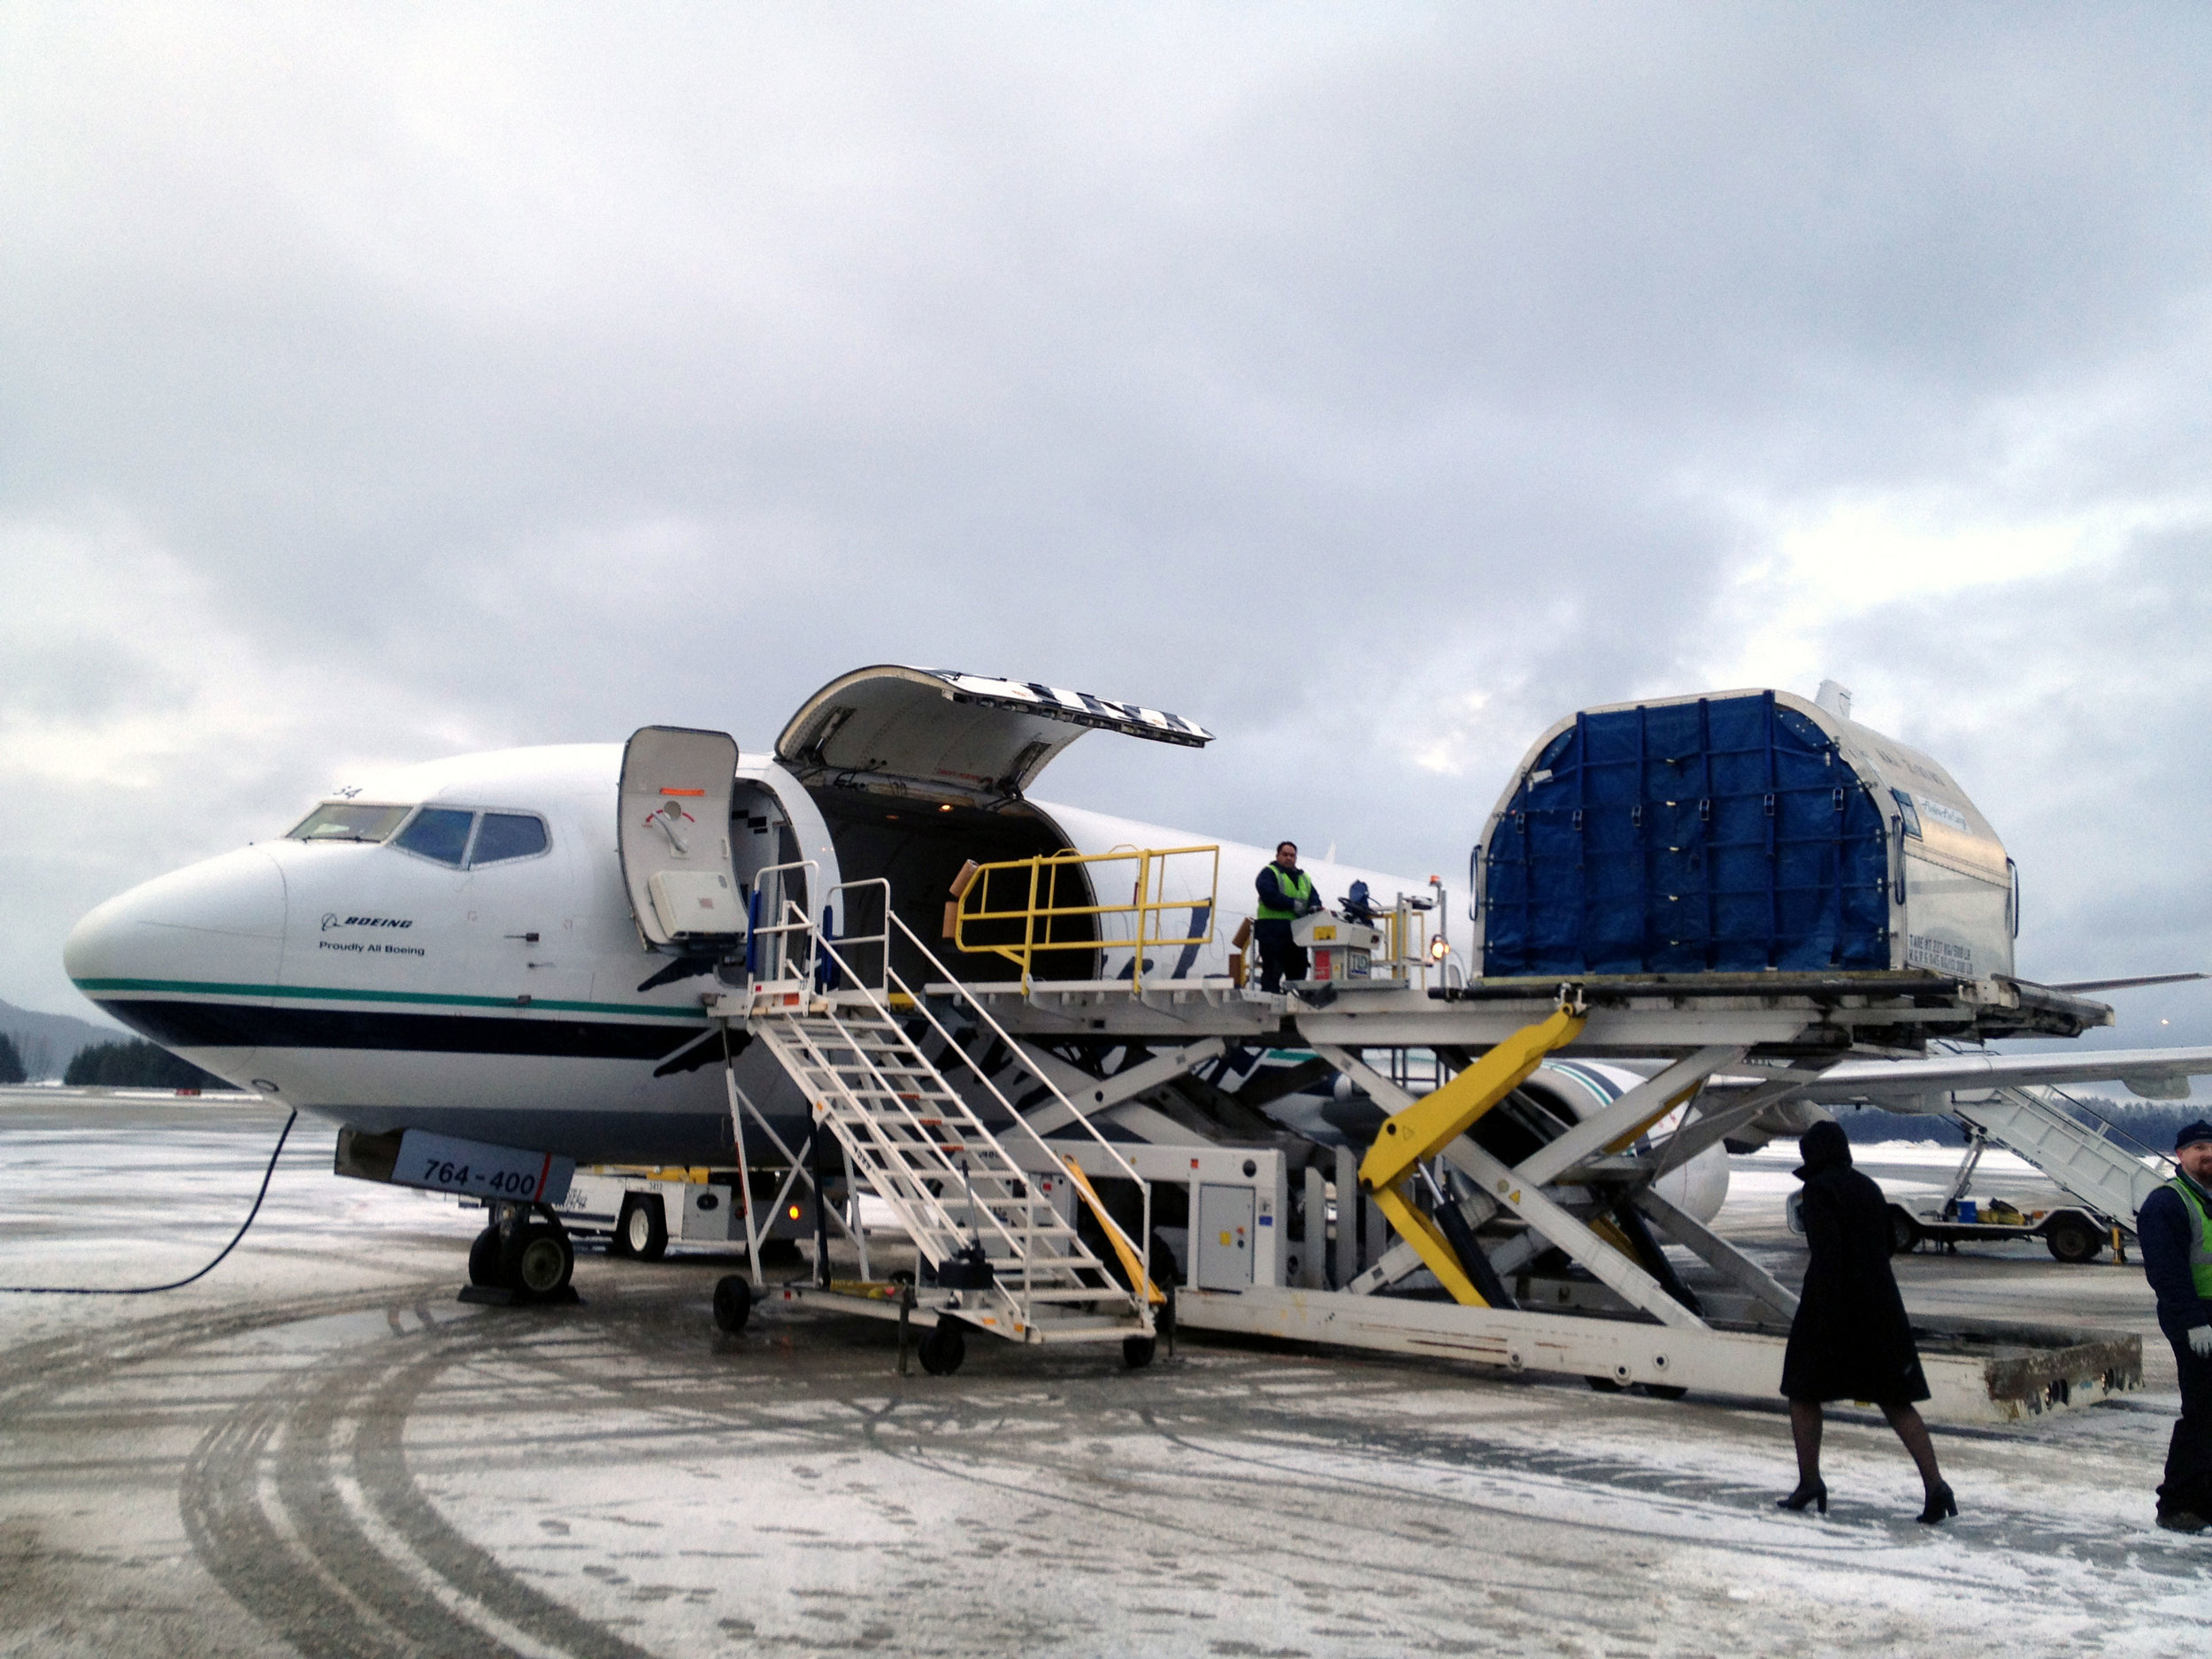 All aboard  the Boeing 737-400  Combi      aircraft in  Juneau! This is a combination cargo and passenger aircraft with all passengers way in the back.